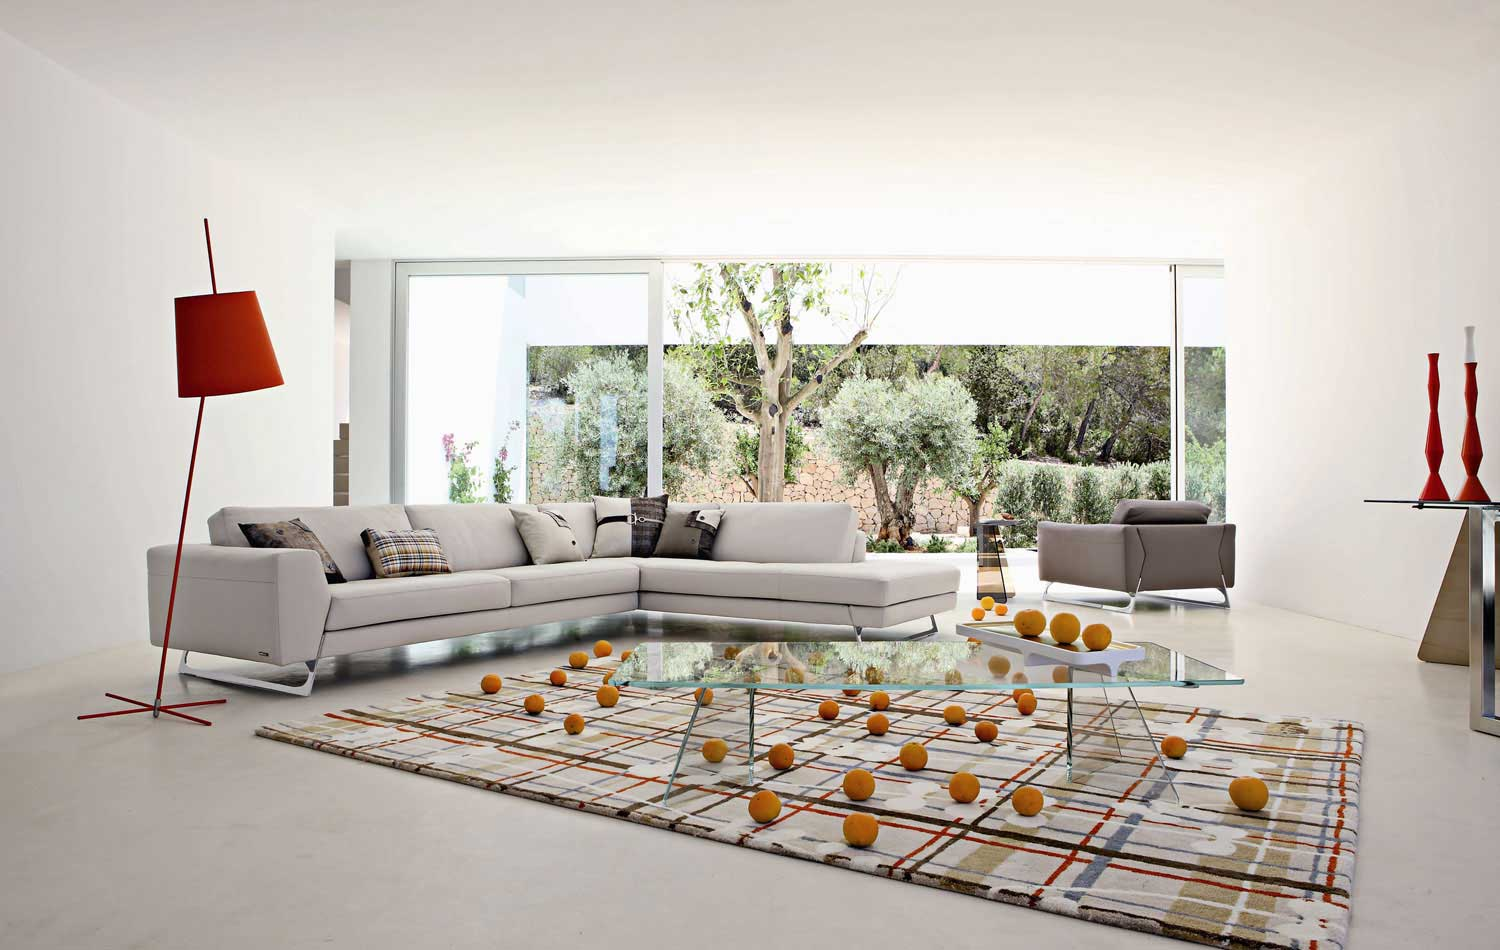 Living Room Inspiration 120 Modern Sofas By Roche Bobois Part 33 Architecture Amp Design